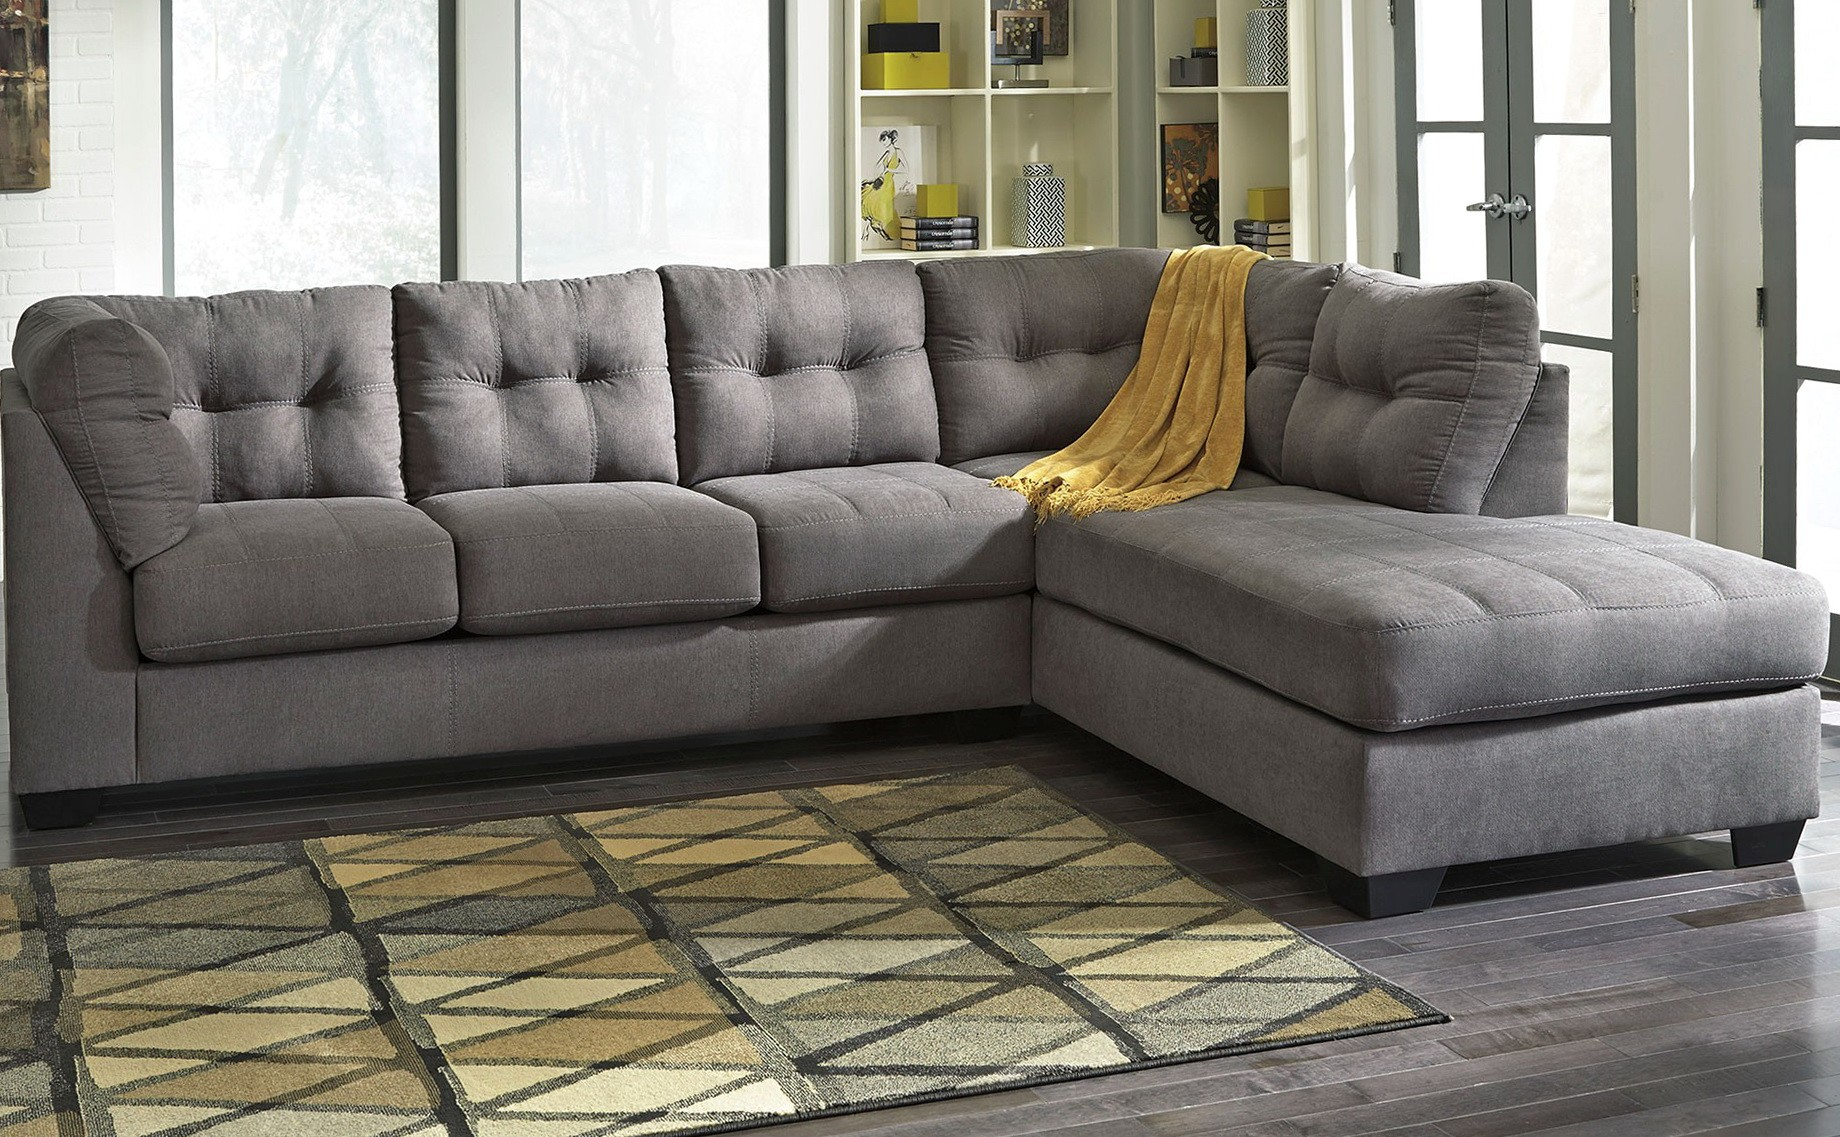 Gray Sectional sofa with Chaise Cool Perfect Grey Sectional sofa with Chaise for Your Modern sofa Photo